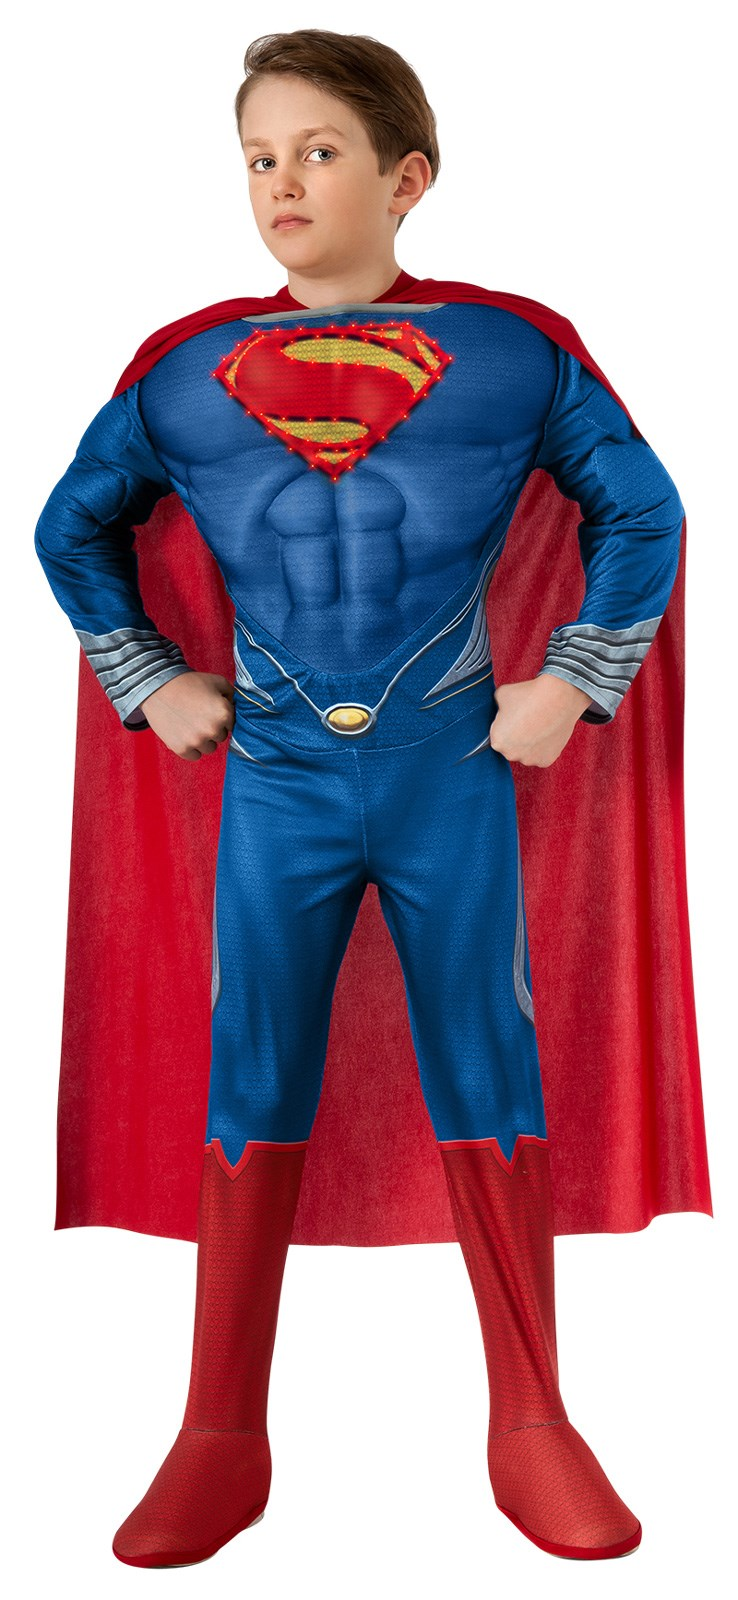 Superman Man of Steel Deluxe Light Up Child Costume Small (4-6)